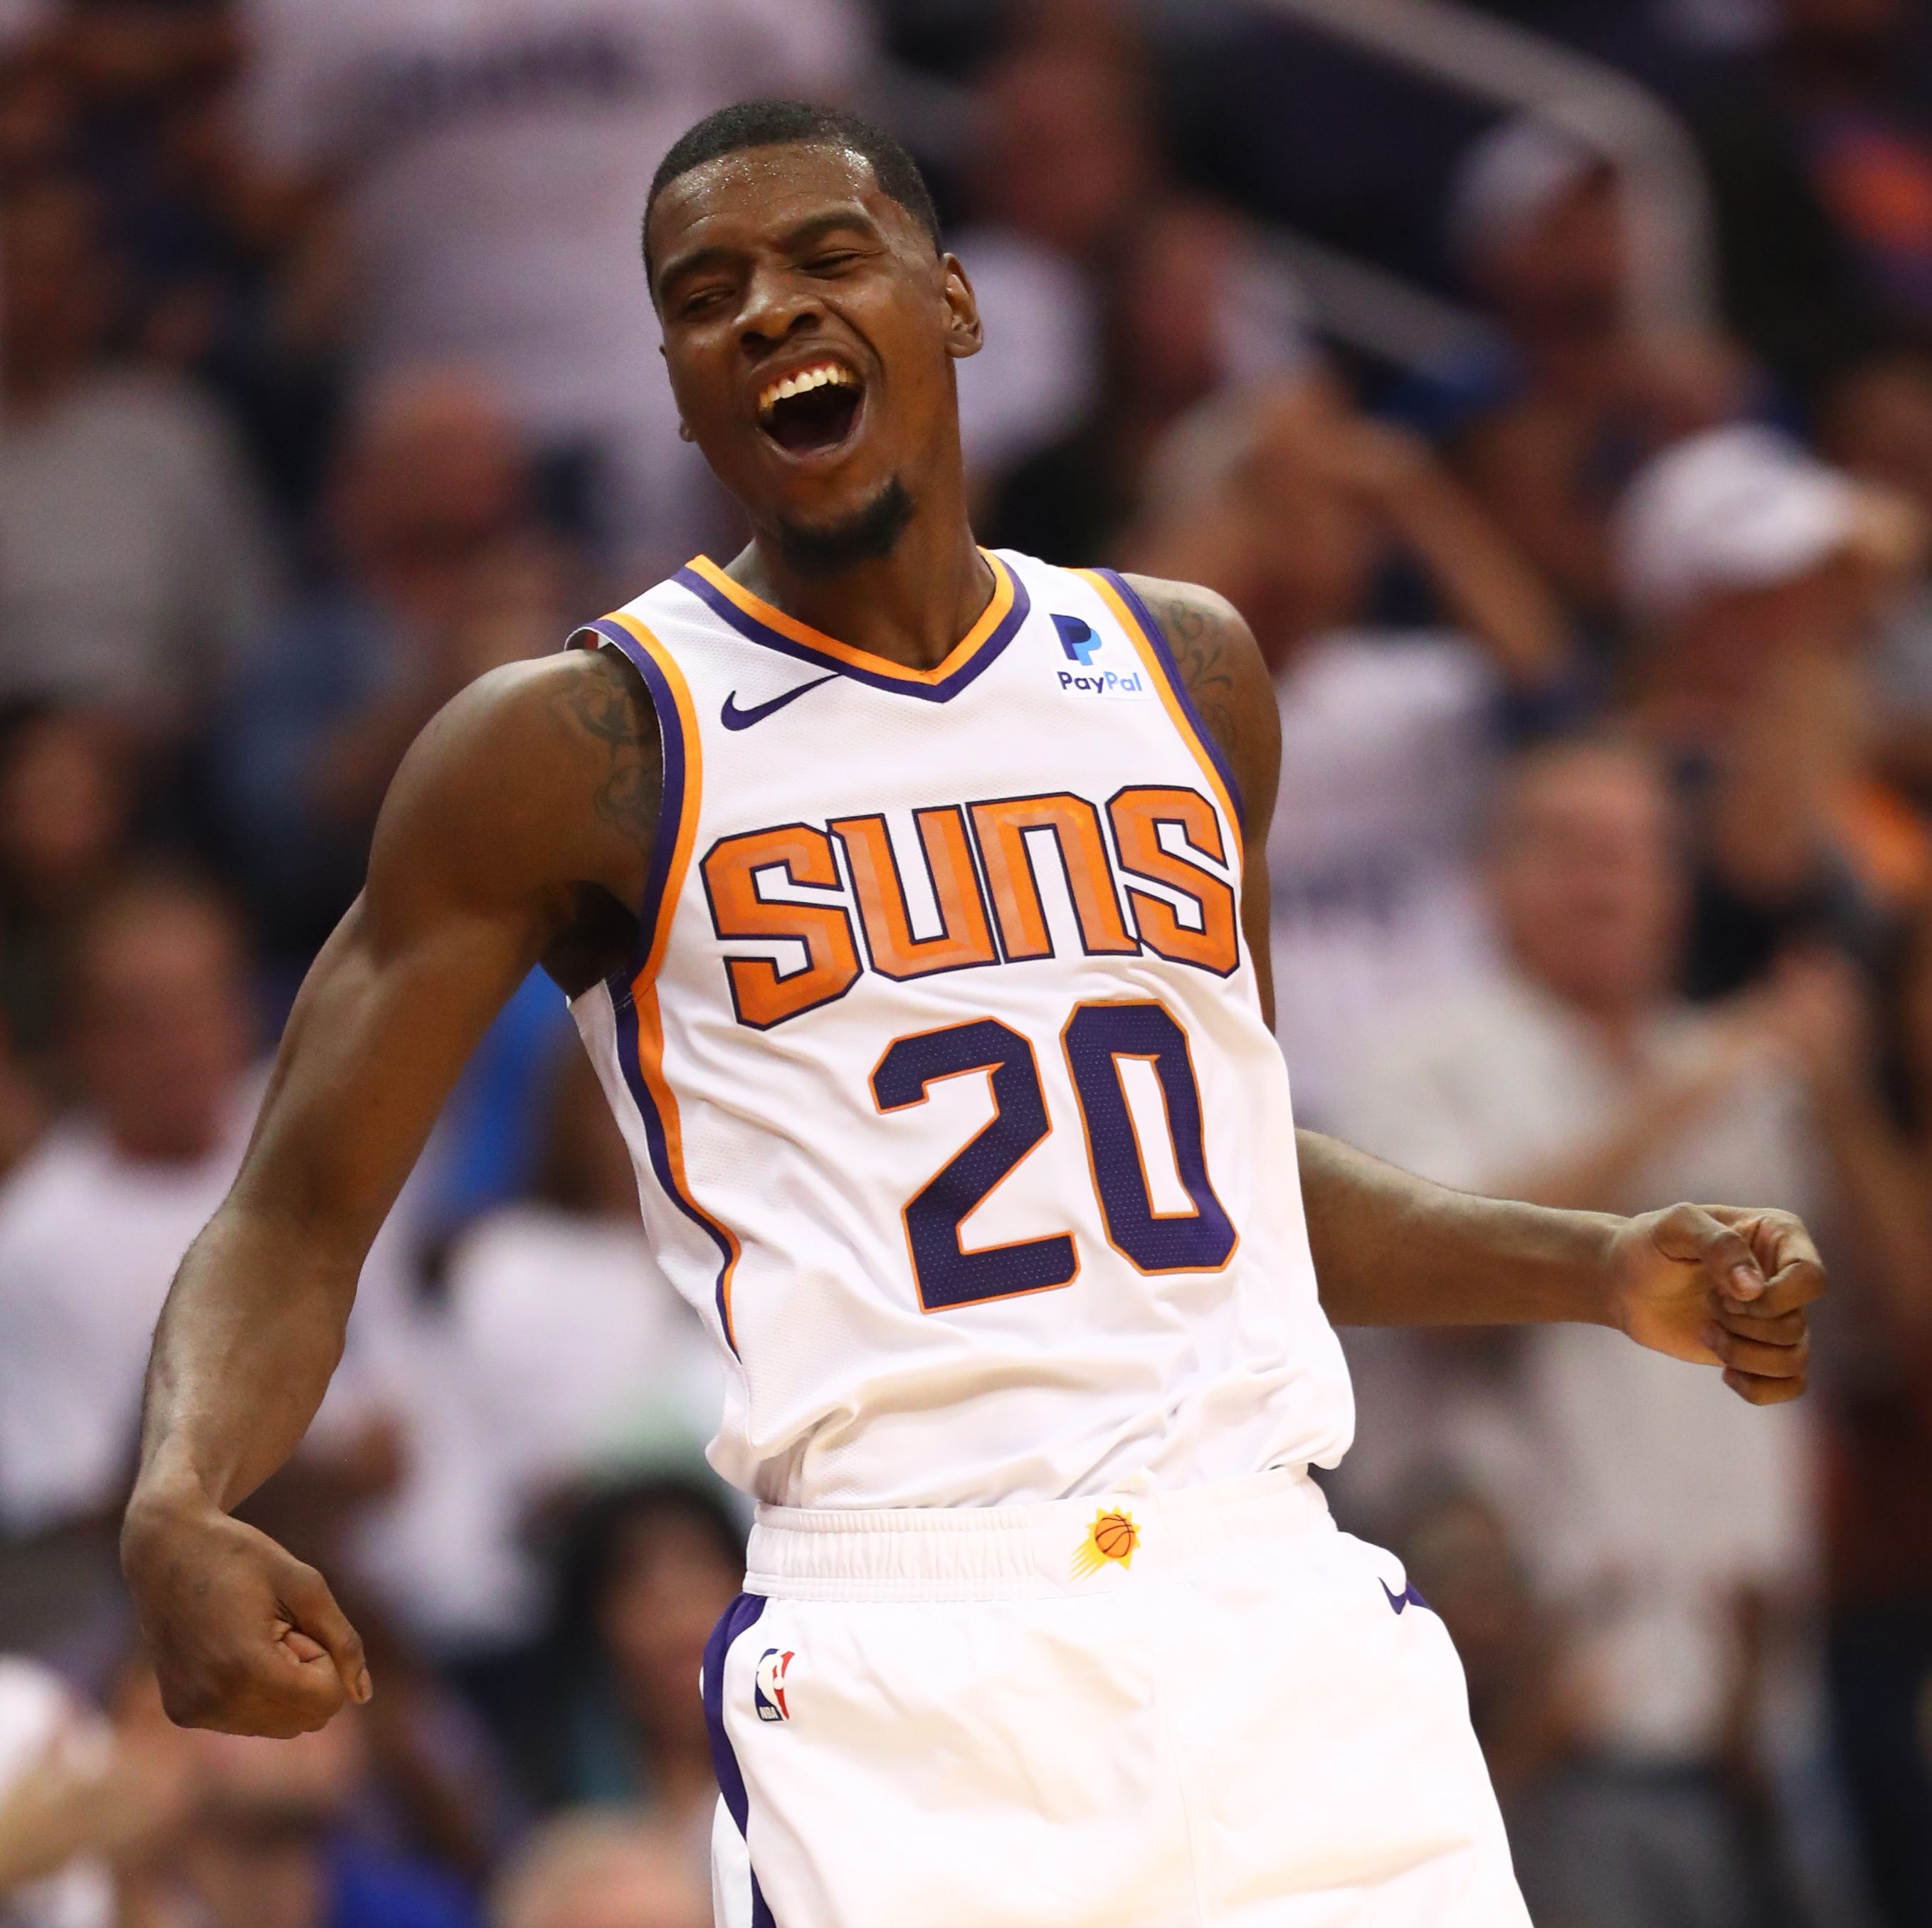 Suns' Josh Jackson says he threw a bottle during 'Malice at the Palace' brawl in 2004